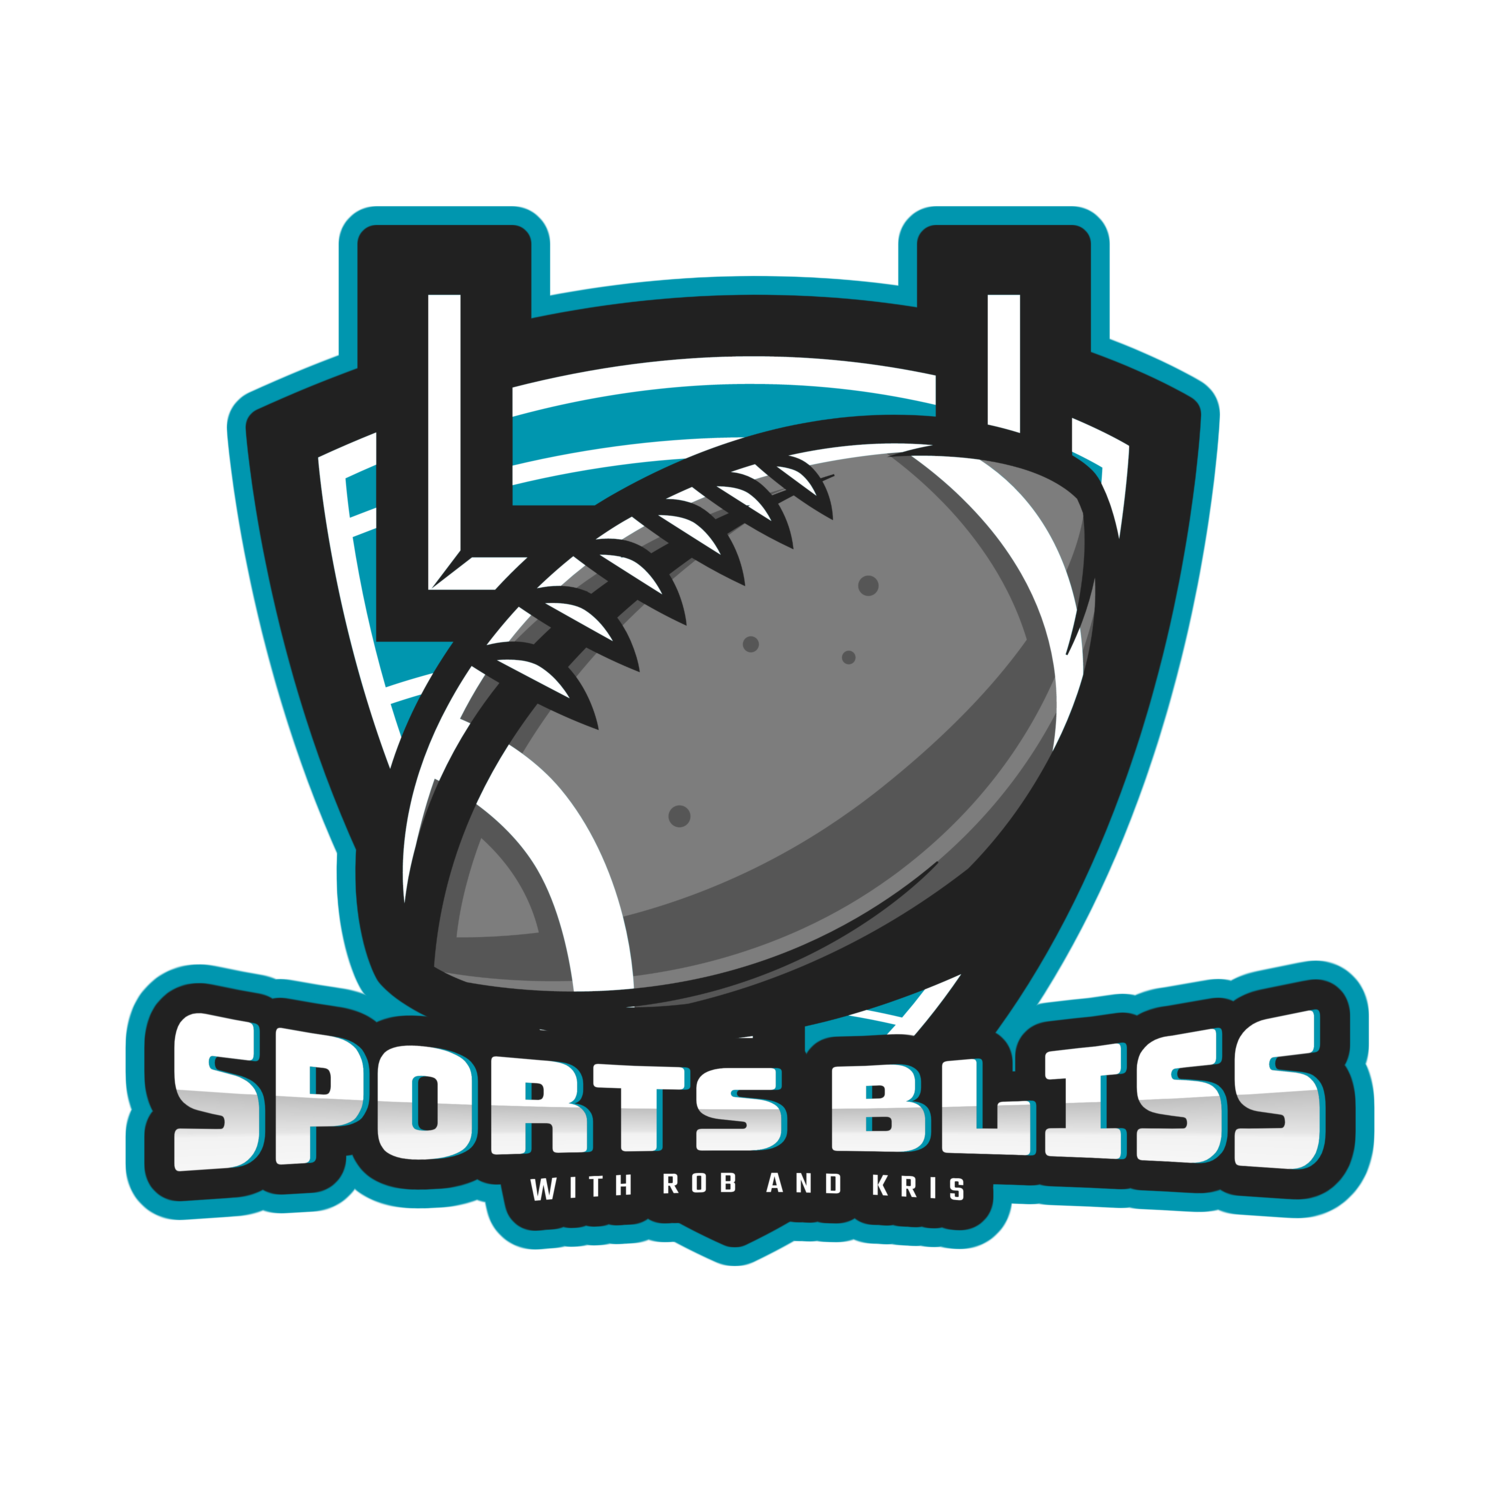 Artwork for podcast Sports Bliss with Rob and Kris